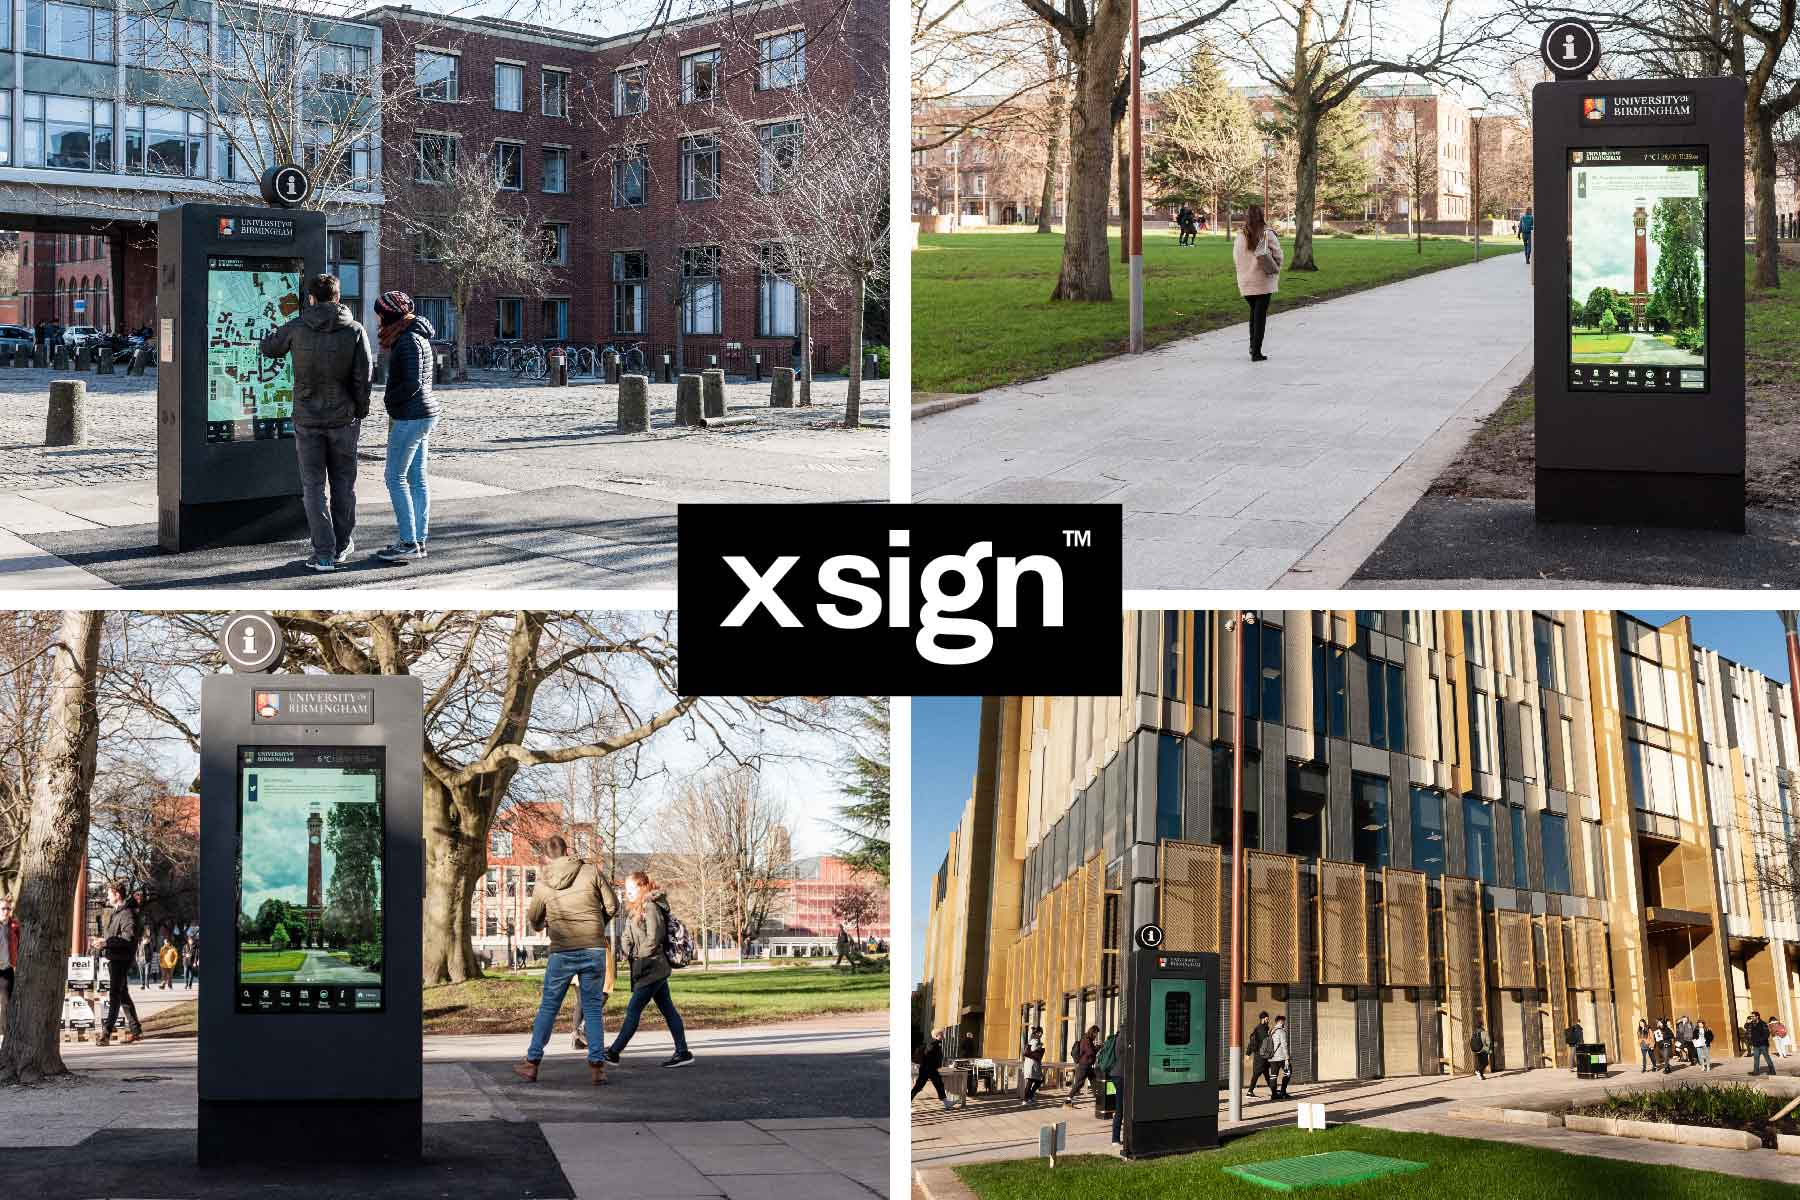 Composite picture showing four images of wayfinding totems situated around the University of Birmingham